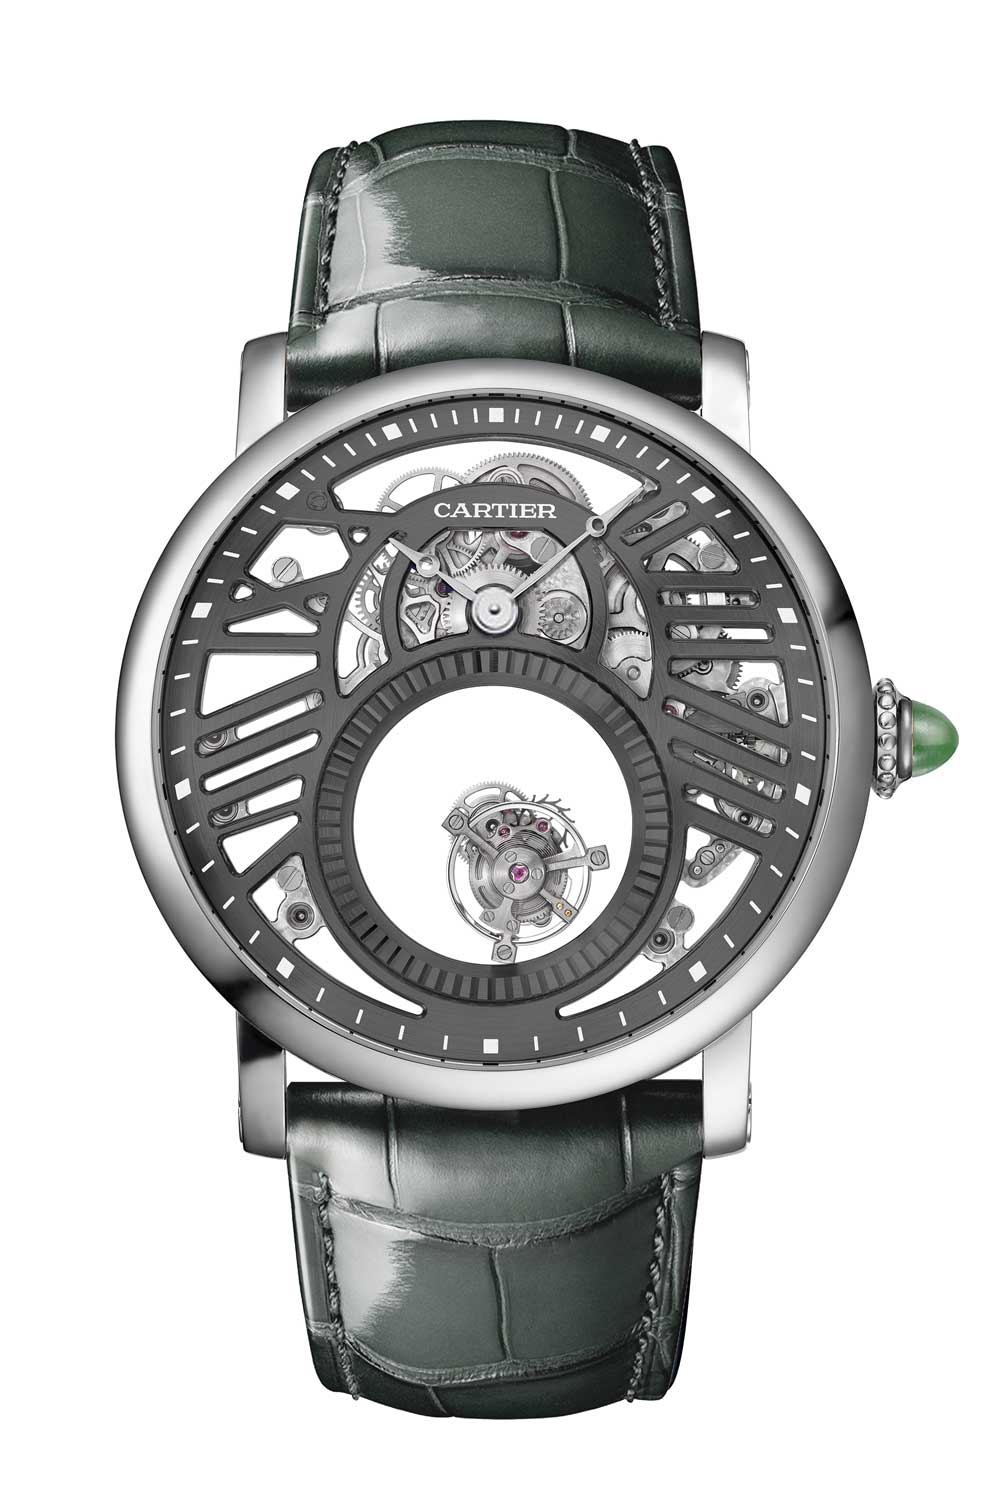 The Rotonde de Cartier Skeleton Mysterious Double Tourbillon has a flying tourbillon rotating once on its own axis every minute and then every five minutes on a second axis where it seems to travel around the perimeter of the large open circle